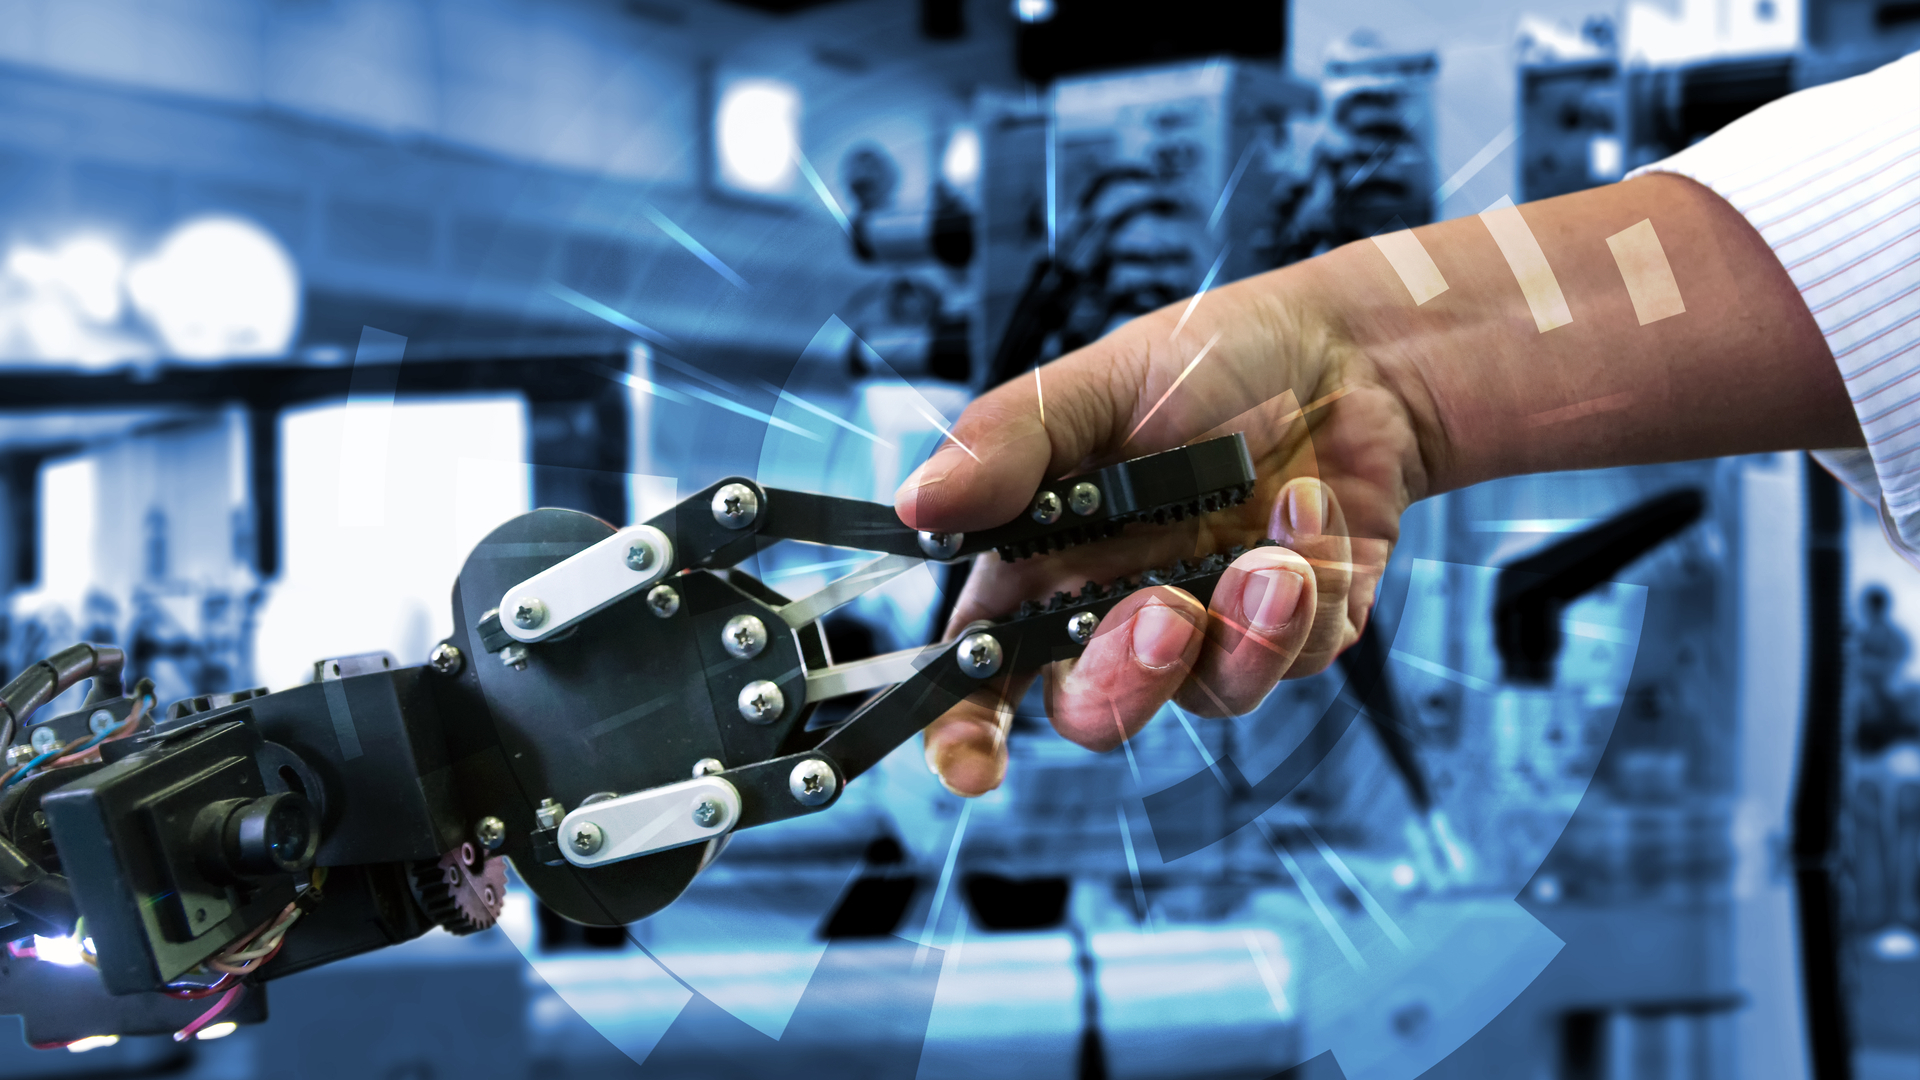 How Will Industry 4.0 Impact Technology & The Future Of Work